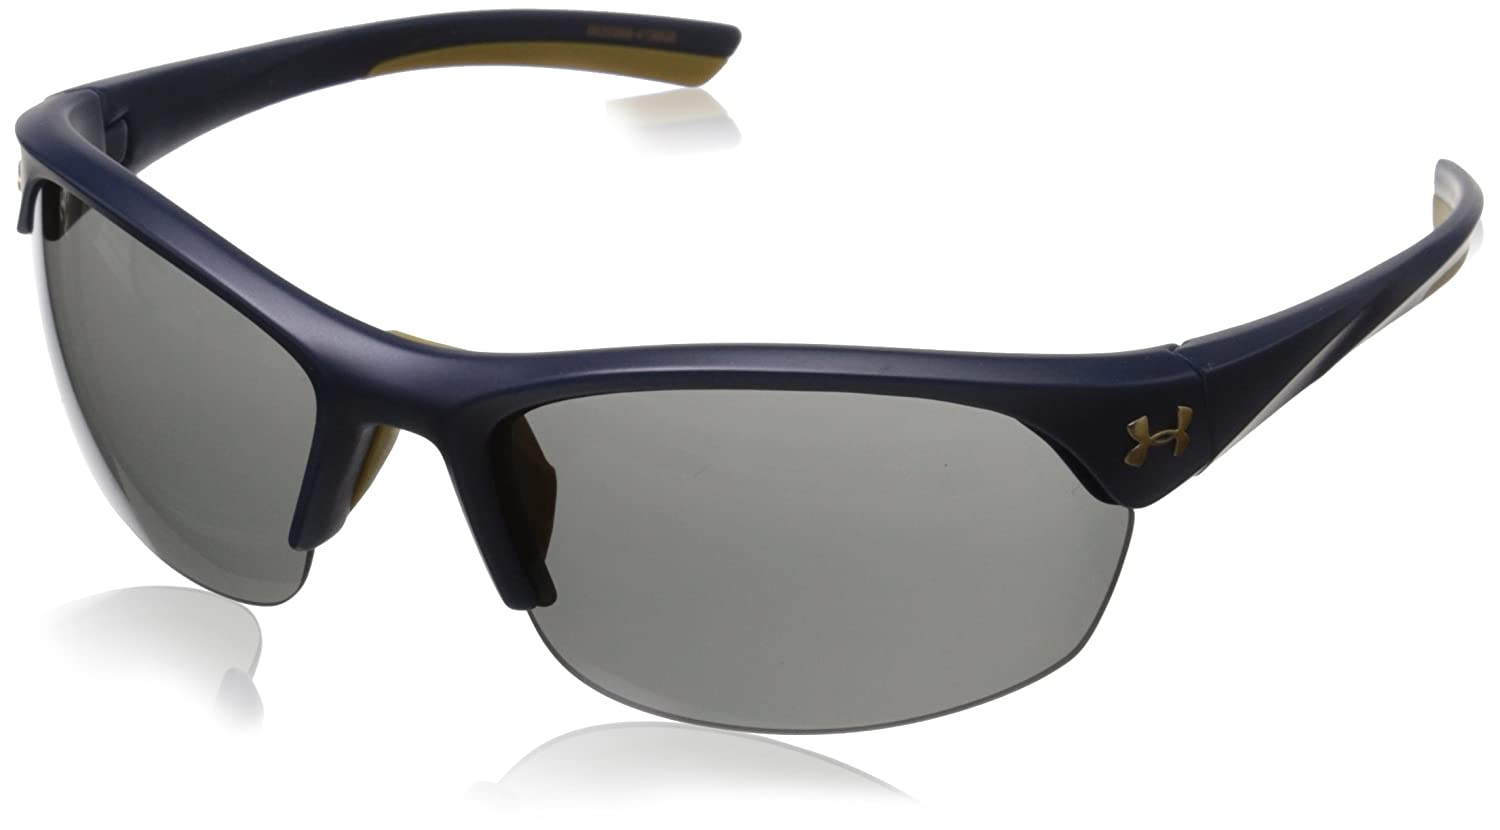 Under Armour Women's Marbella 8600066-419500 Rectangular Sunglasses